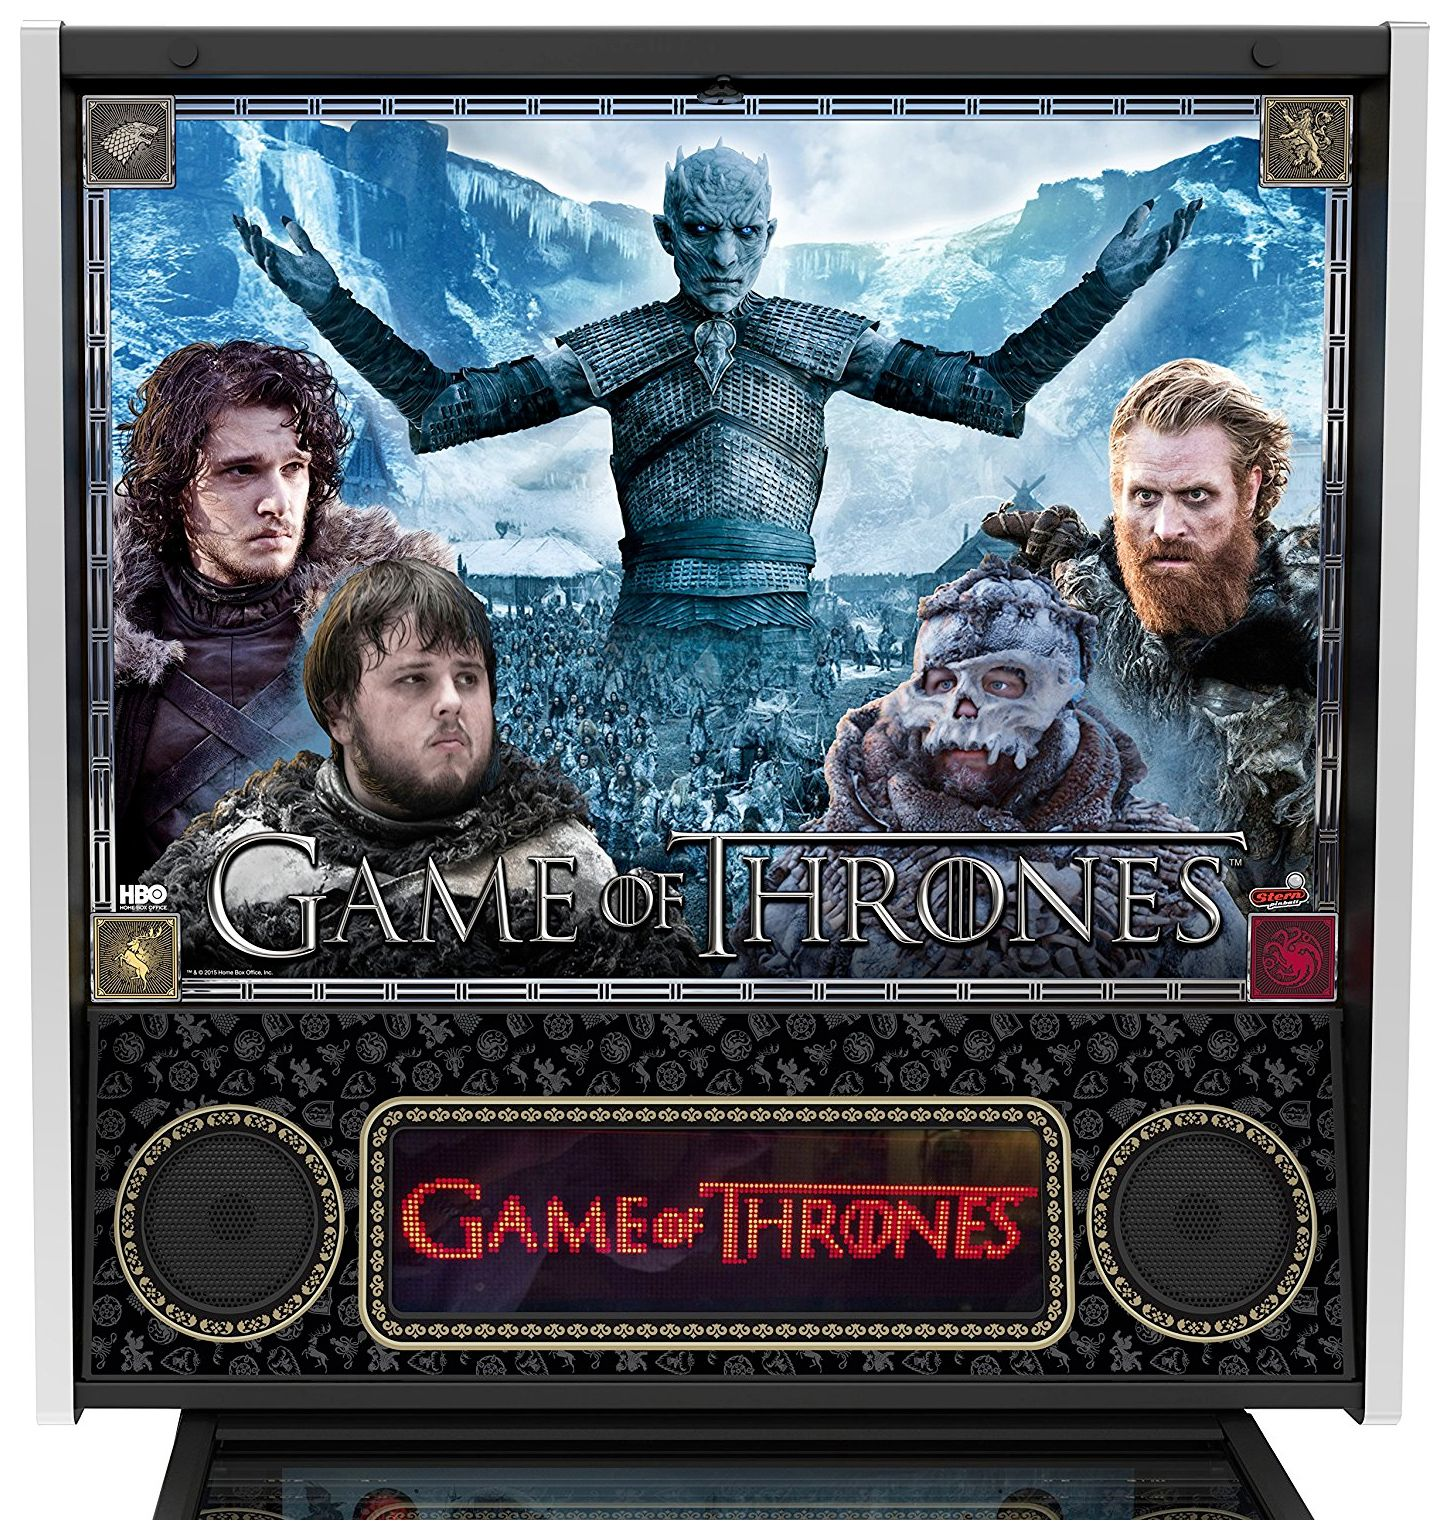 Game-of-Thrones-Pinball-Premium-Arcade-Pinball-Machine-05